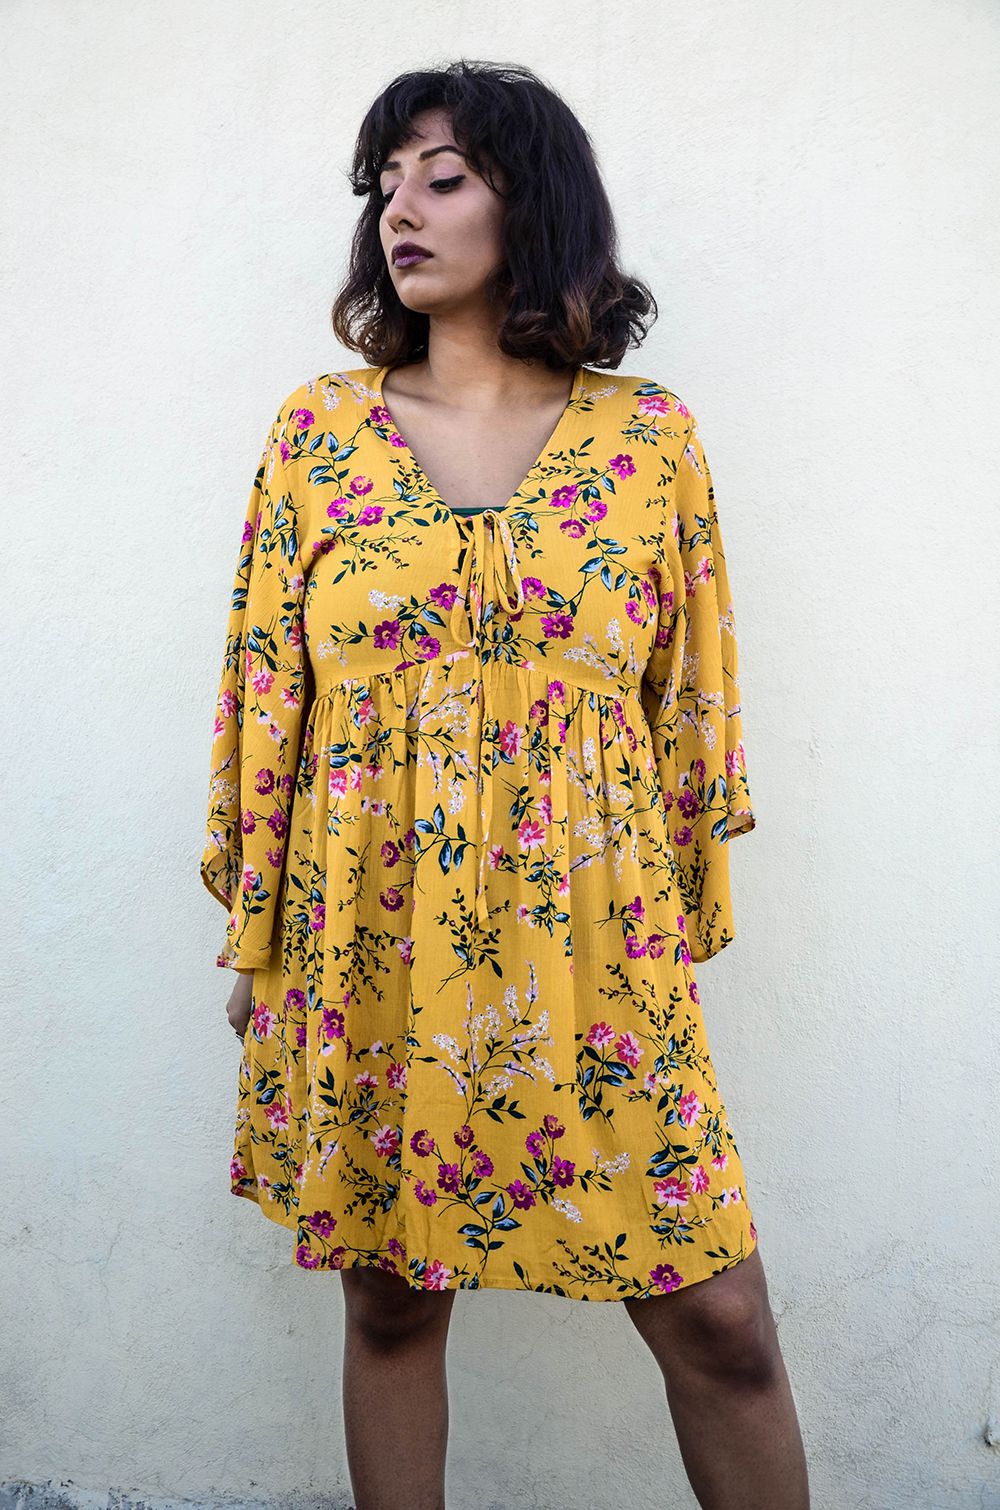 Floral ; Yellow ; Shift Dress ; Bohemian ; Lookbook ; Outfit ; fashion photography ; Romwe ; combat boots ; wine lips ; grunge ; ootd ; fall look ; tropical ; sunset ; strong ; Dark ; winter fashion ; fall 17 ; Hyderabad ; Editorial ; Naznin ; Naznin Suhaer ; dusky; model ; indian blogger ; hyderabad fashion bloggers ; hyderabad bloggers ; hyderabad fashion blogger ; I Dress for the Applause ;